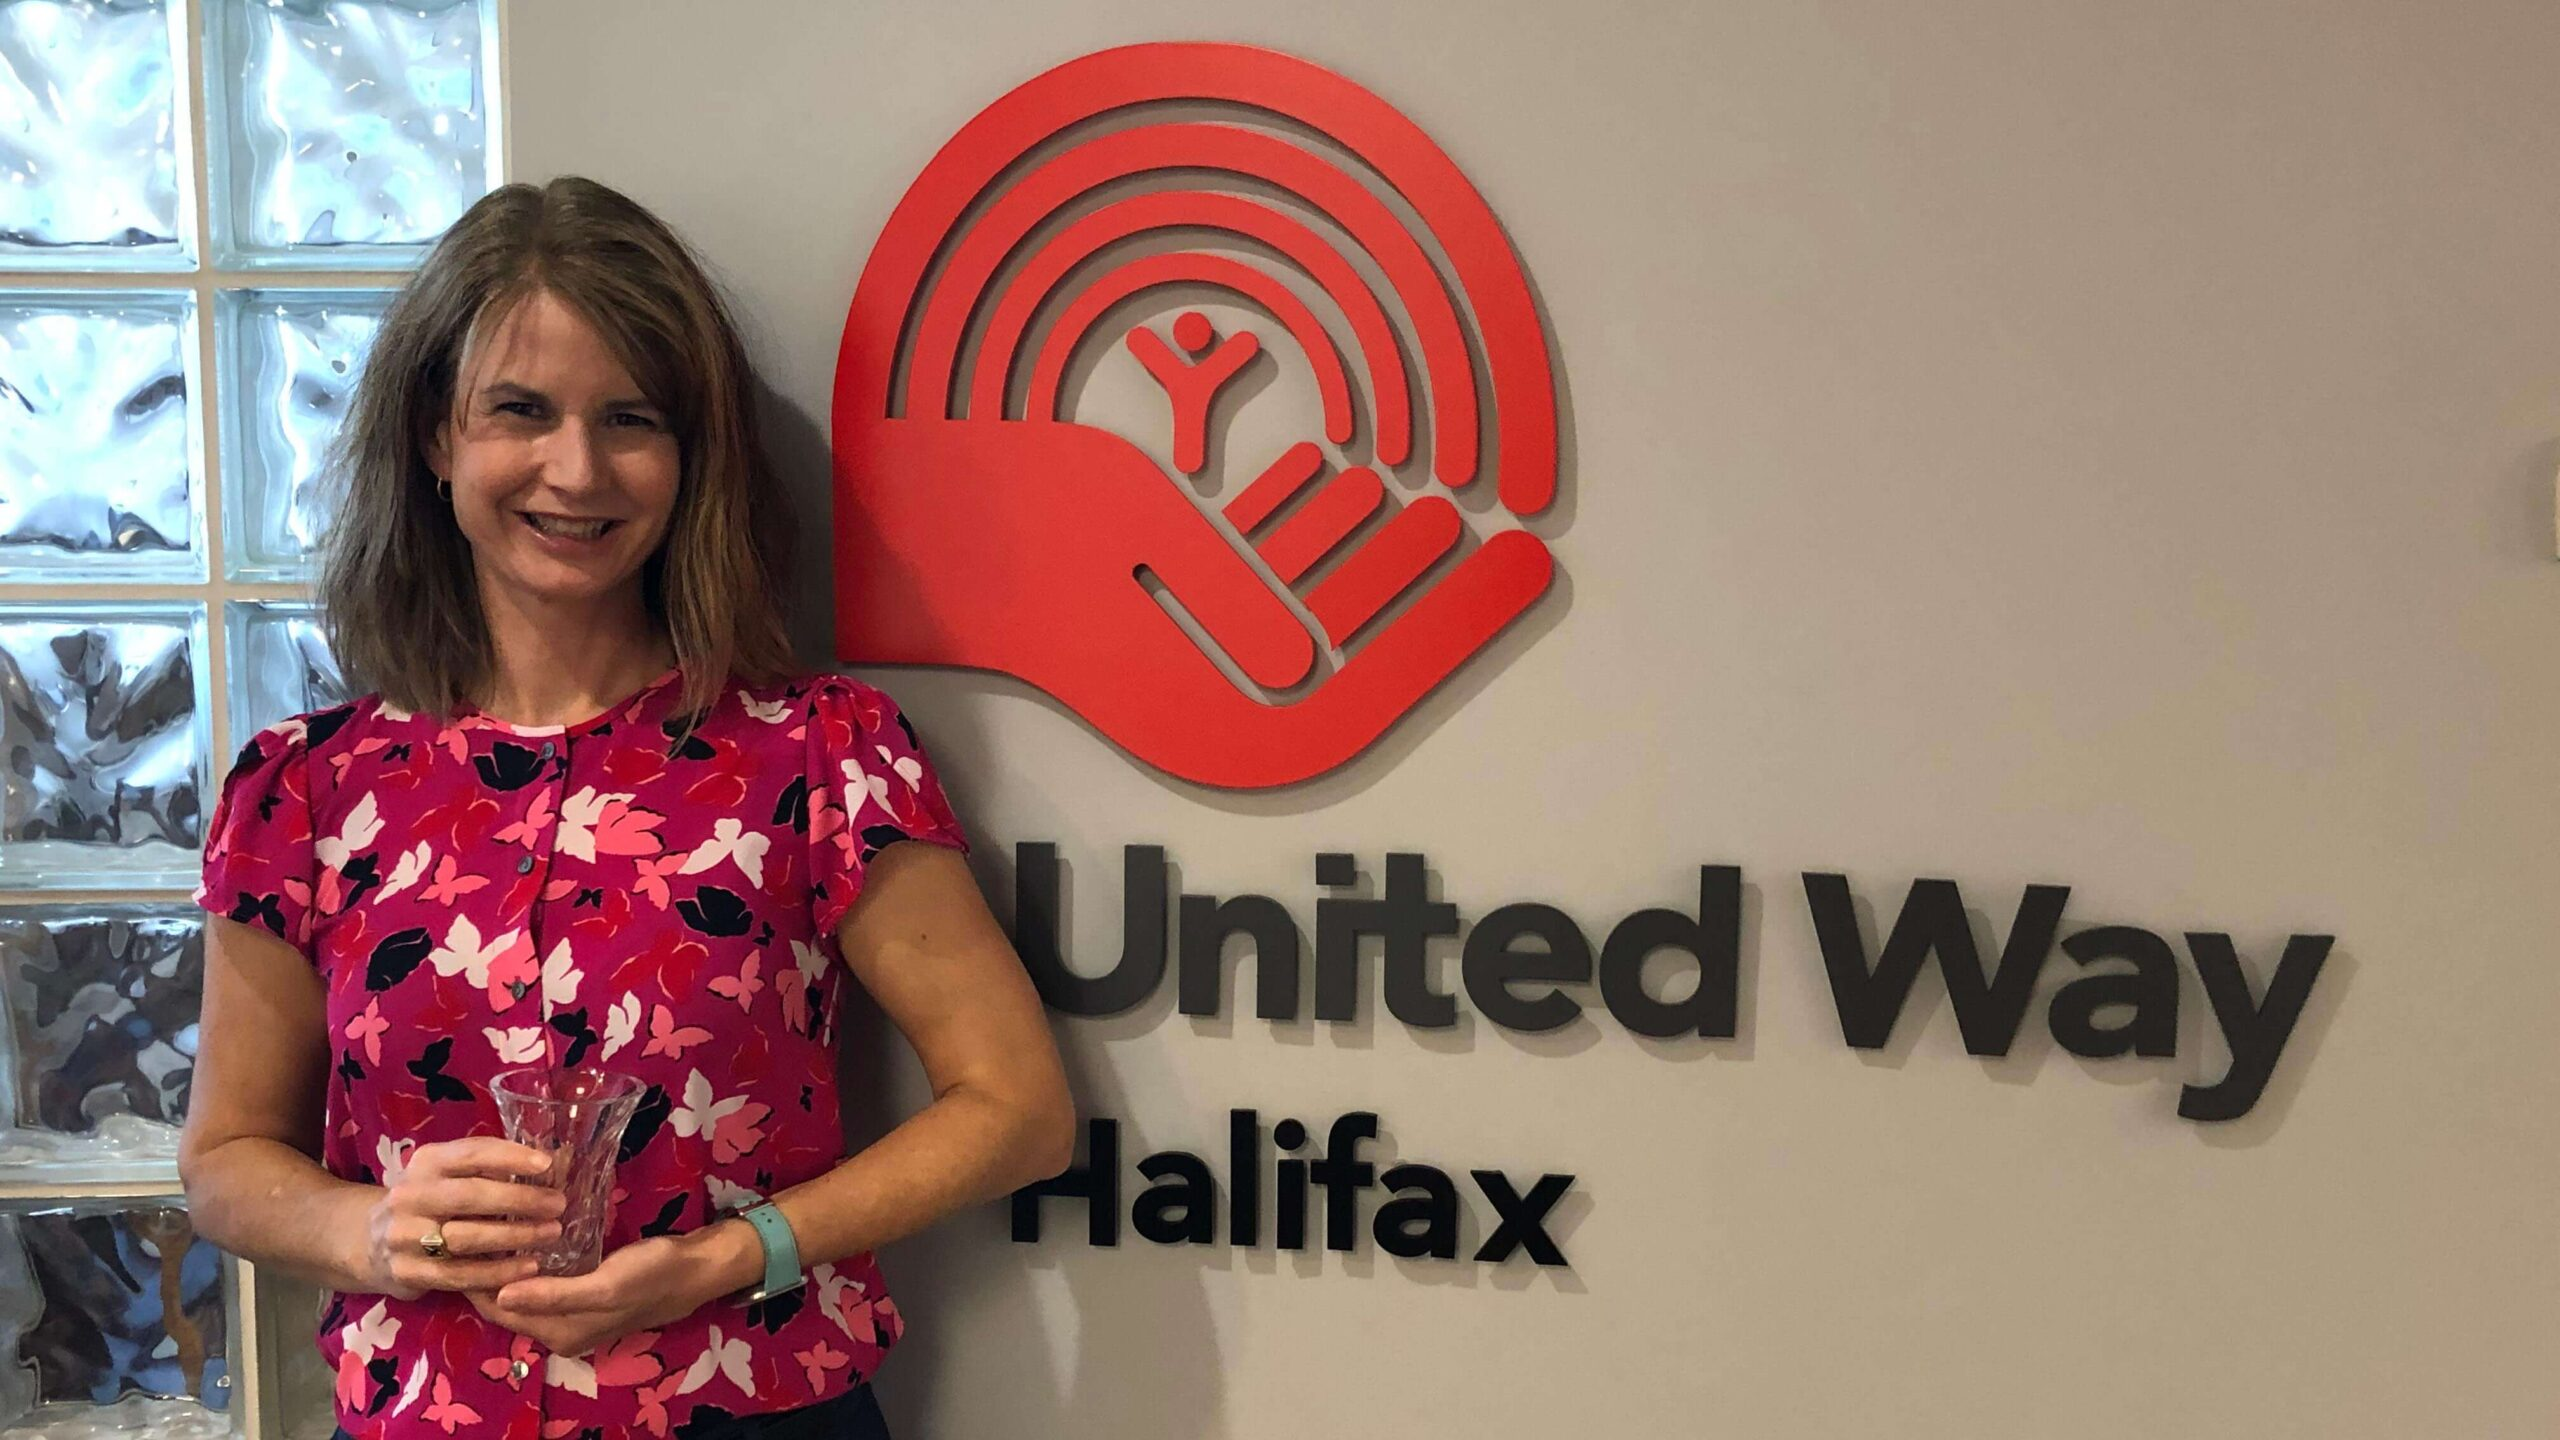 Woman standing beside United Way Halifax sign